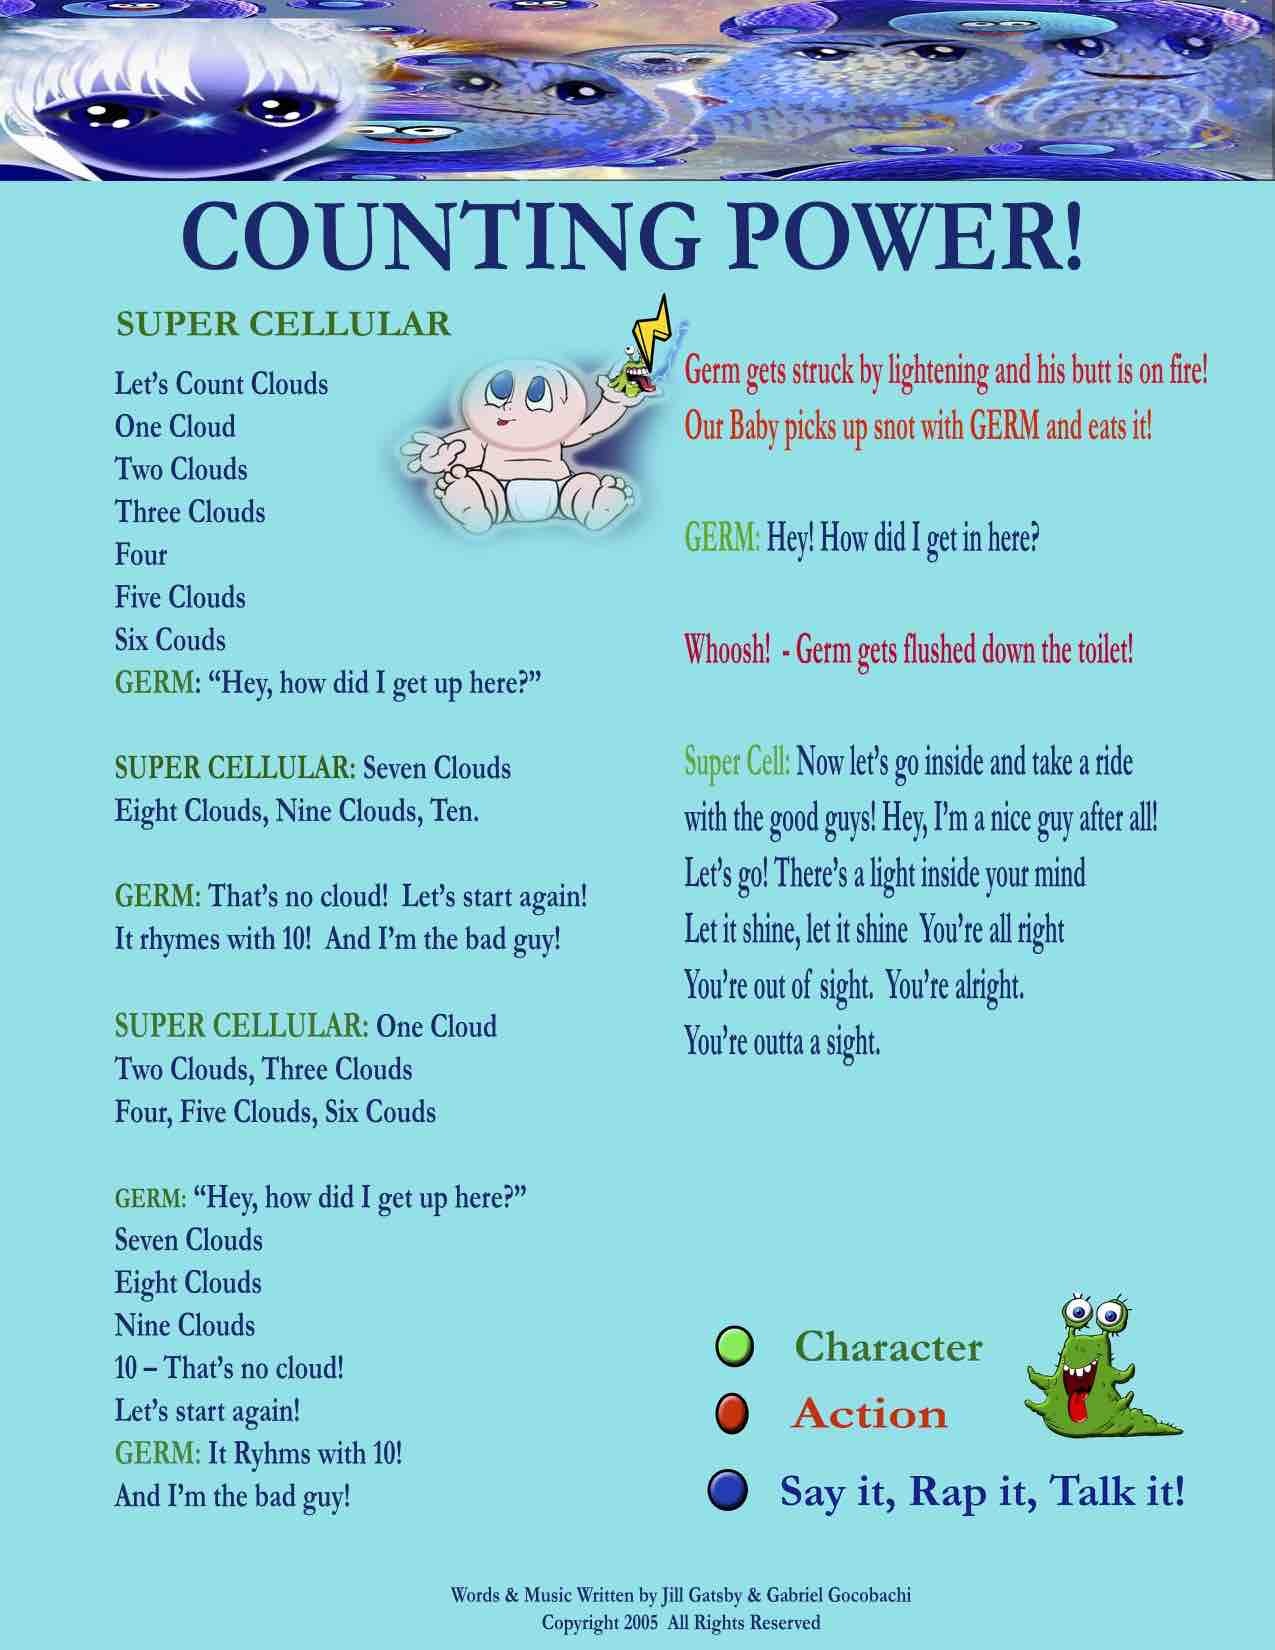 COUNTING POWER MENU